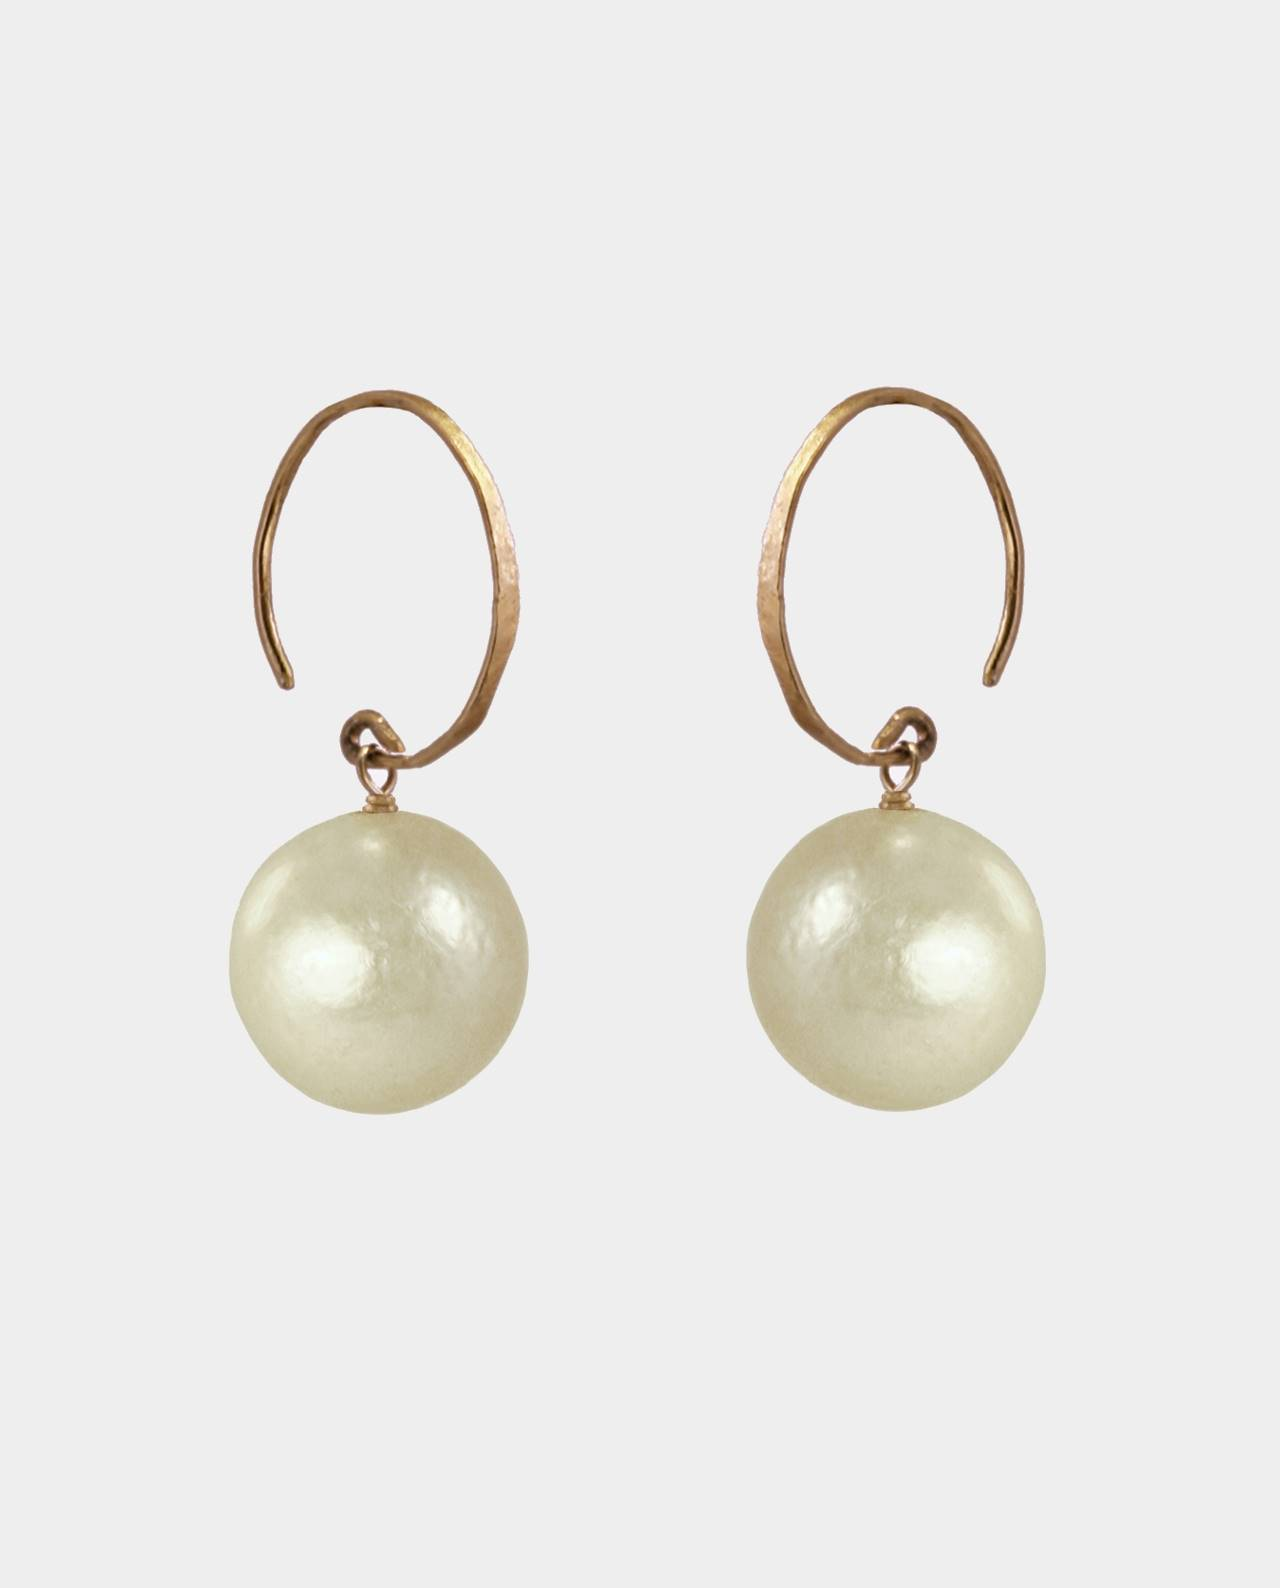 Handmade golden pearls in a colour spectrum with circular gold-plated vintage ear hooks